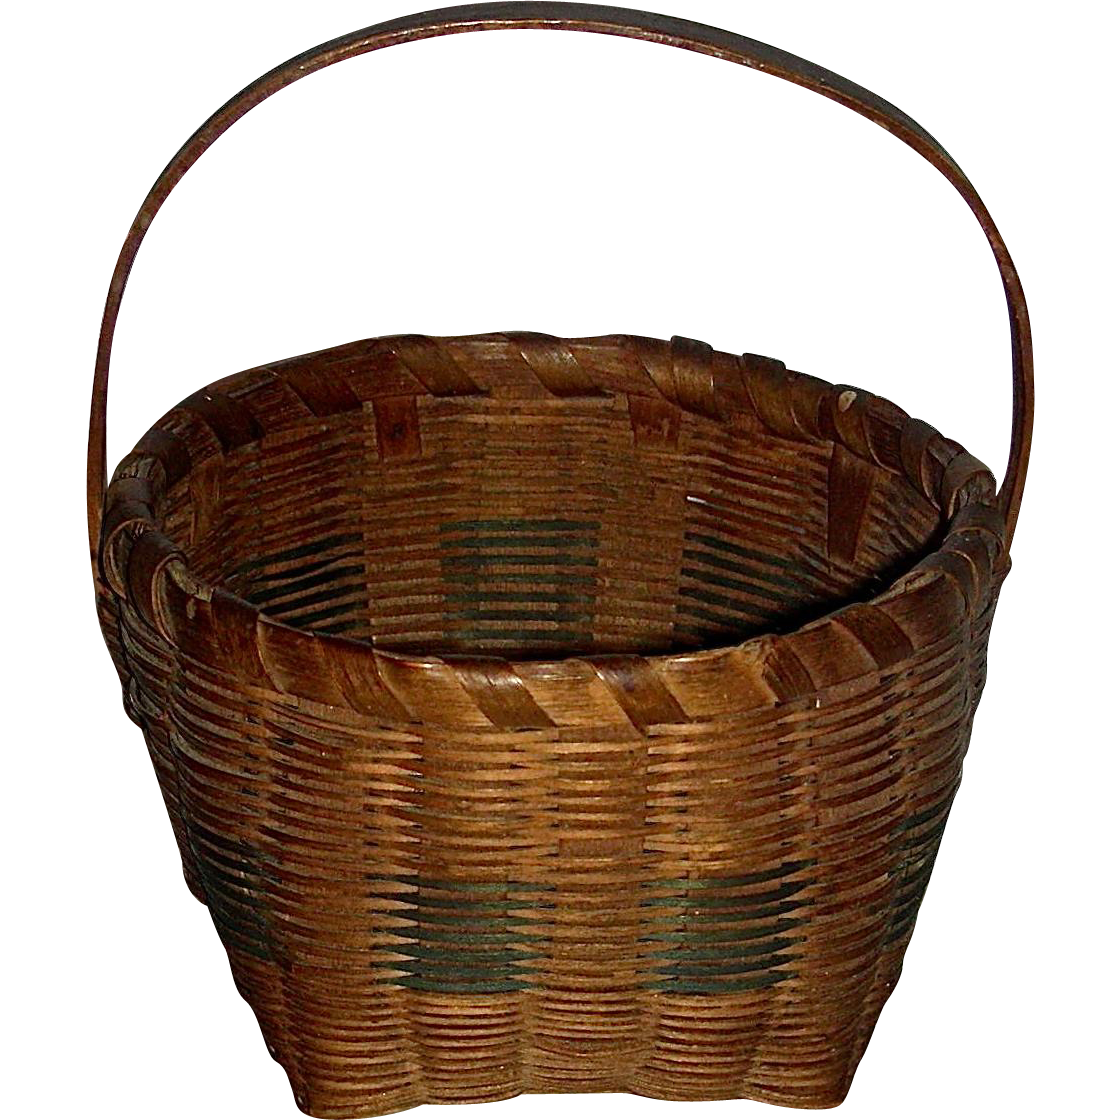 Signed Miniature Basket, c. 1900-1920